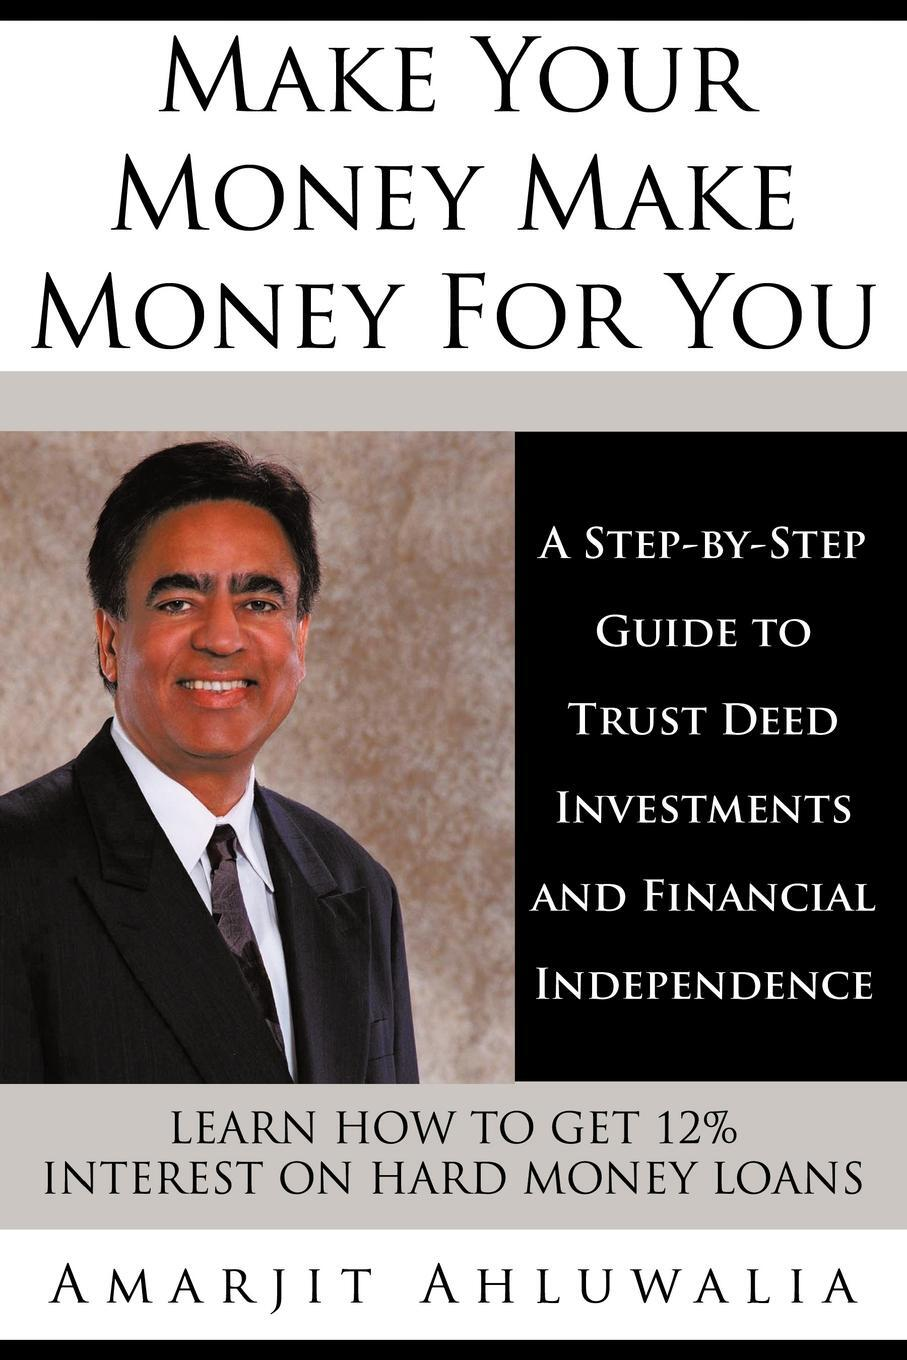 Make Your Money Make Money for You. A Step-By-Step Guide to Trust Deed Investments and Financial Independence